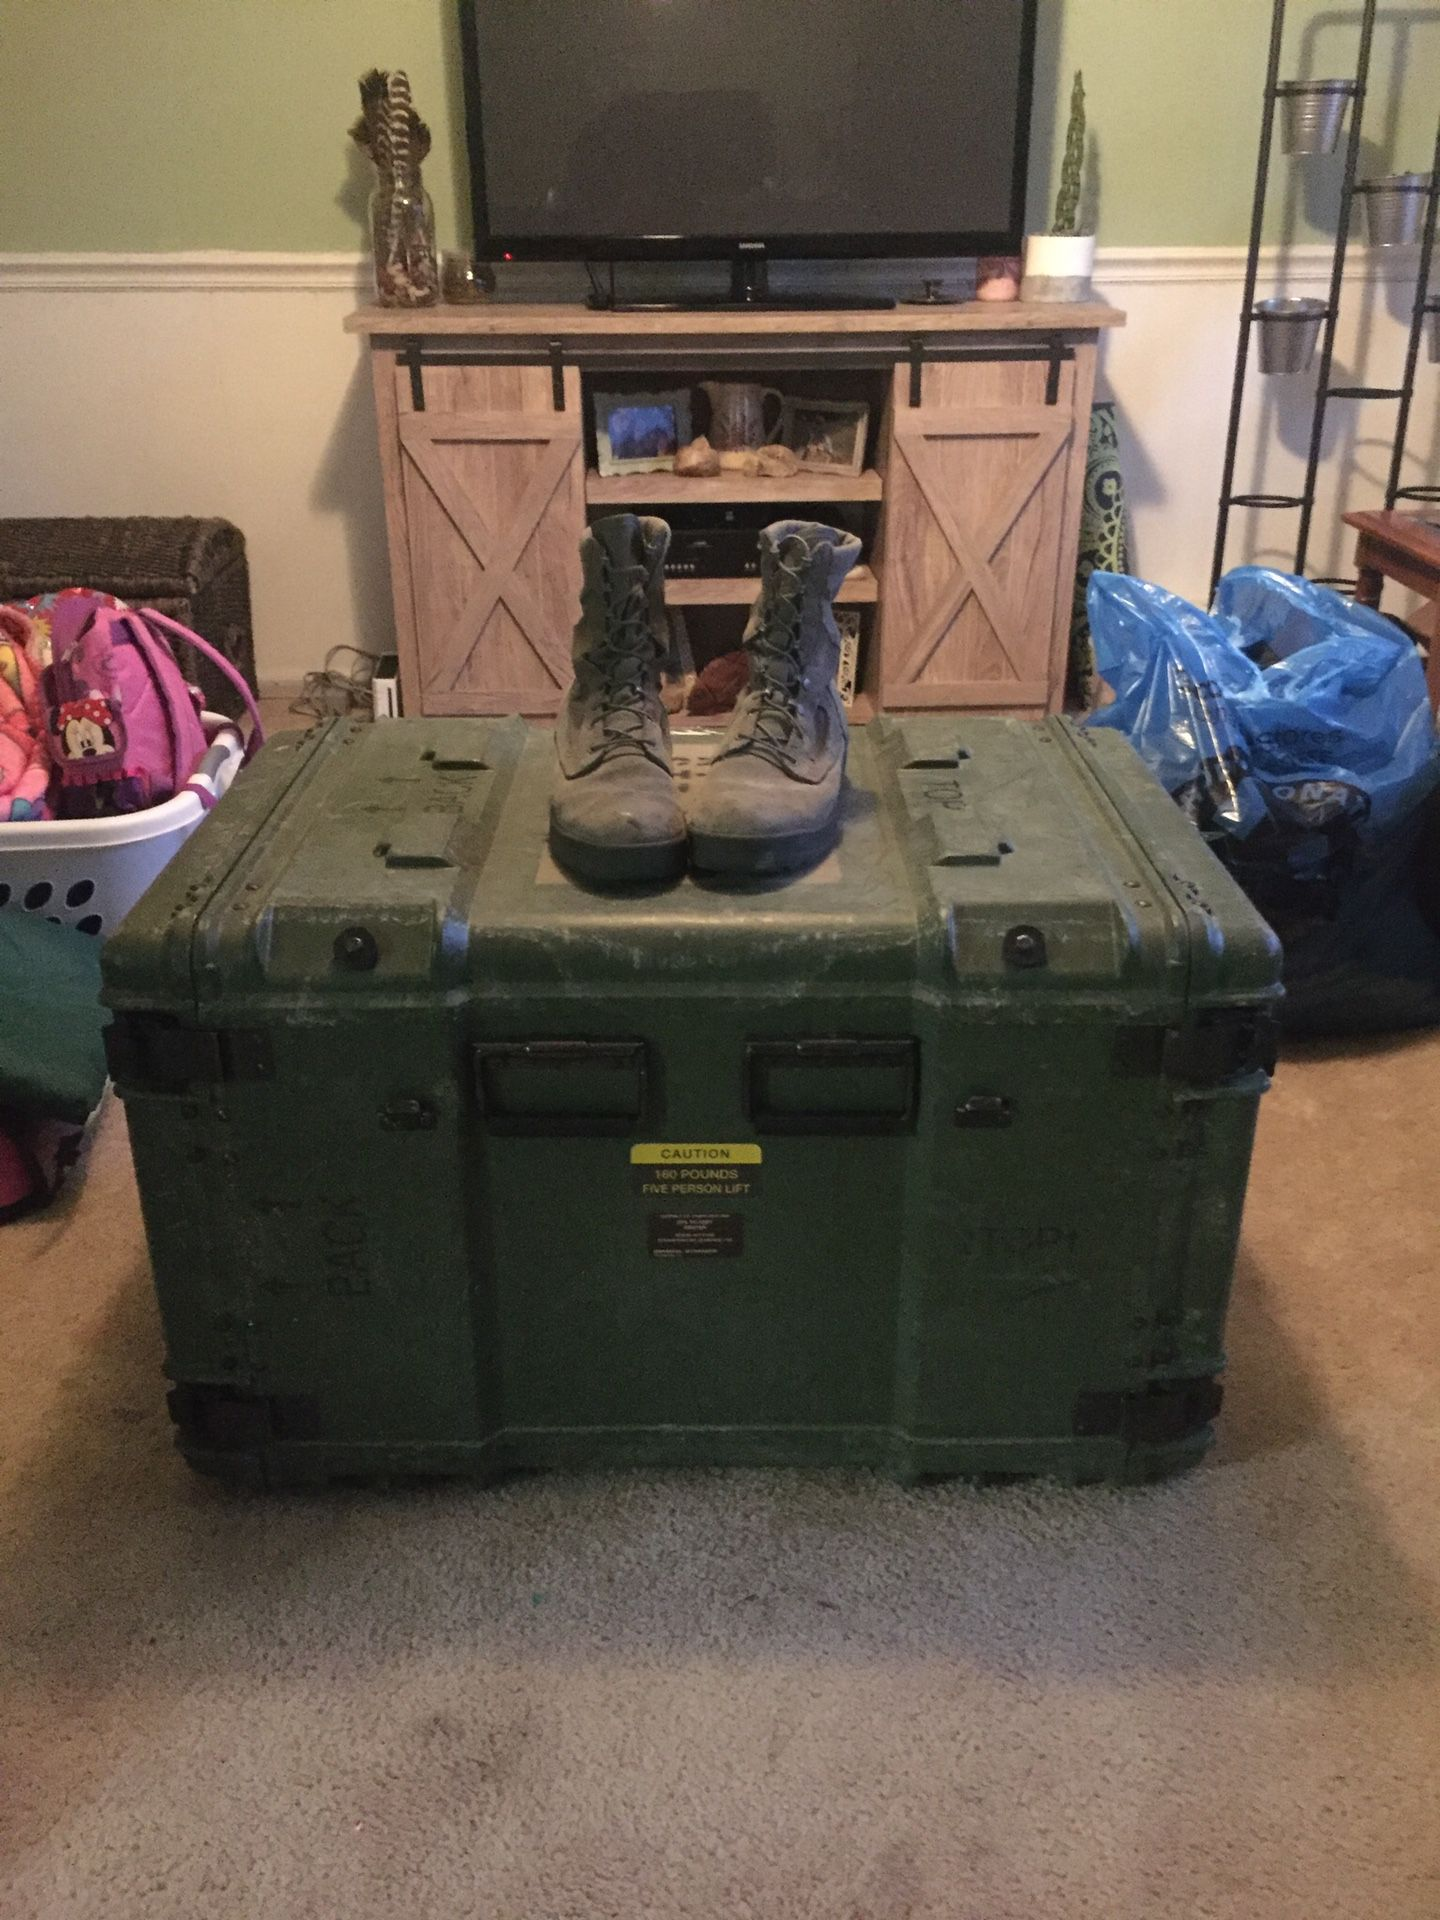 Military surplus containers